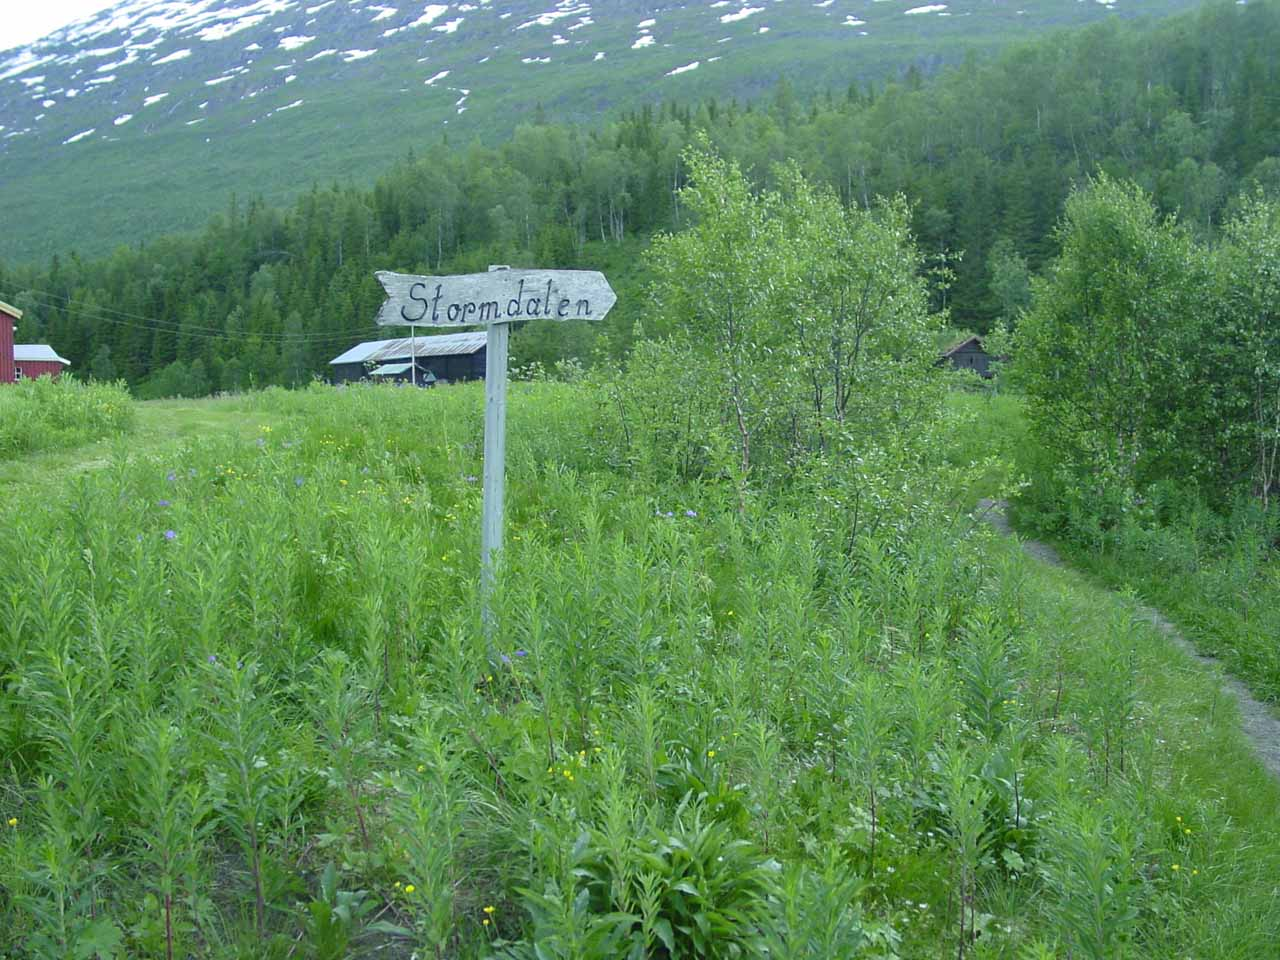 One of the signs pointing the way to Stormdalen and away from the private farmlands